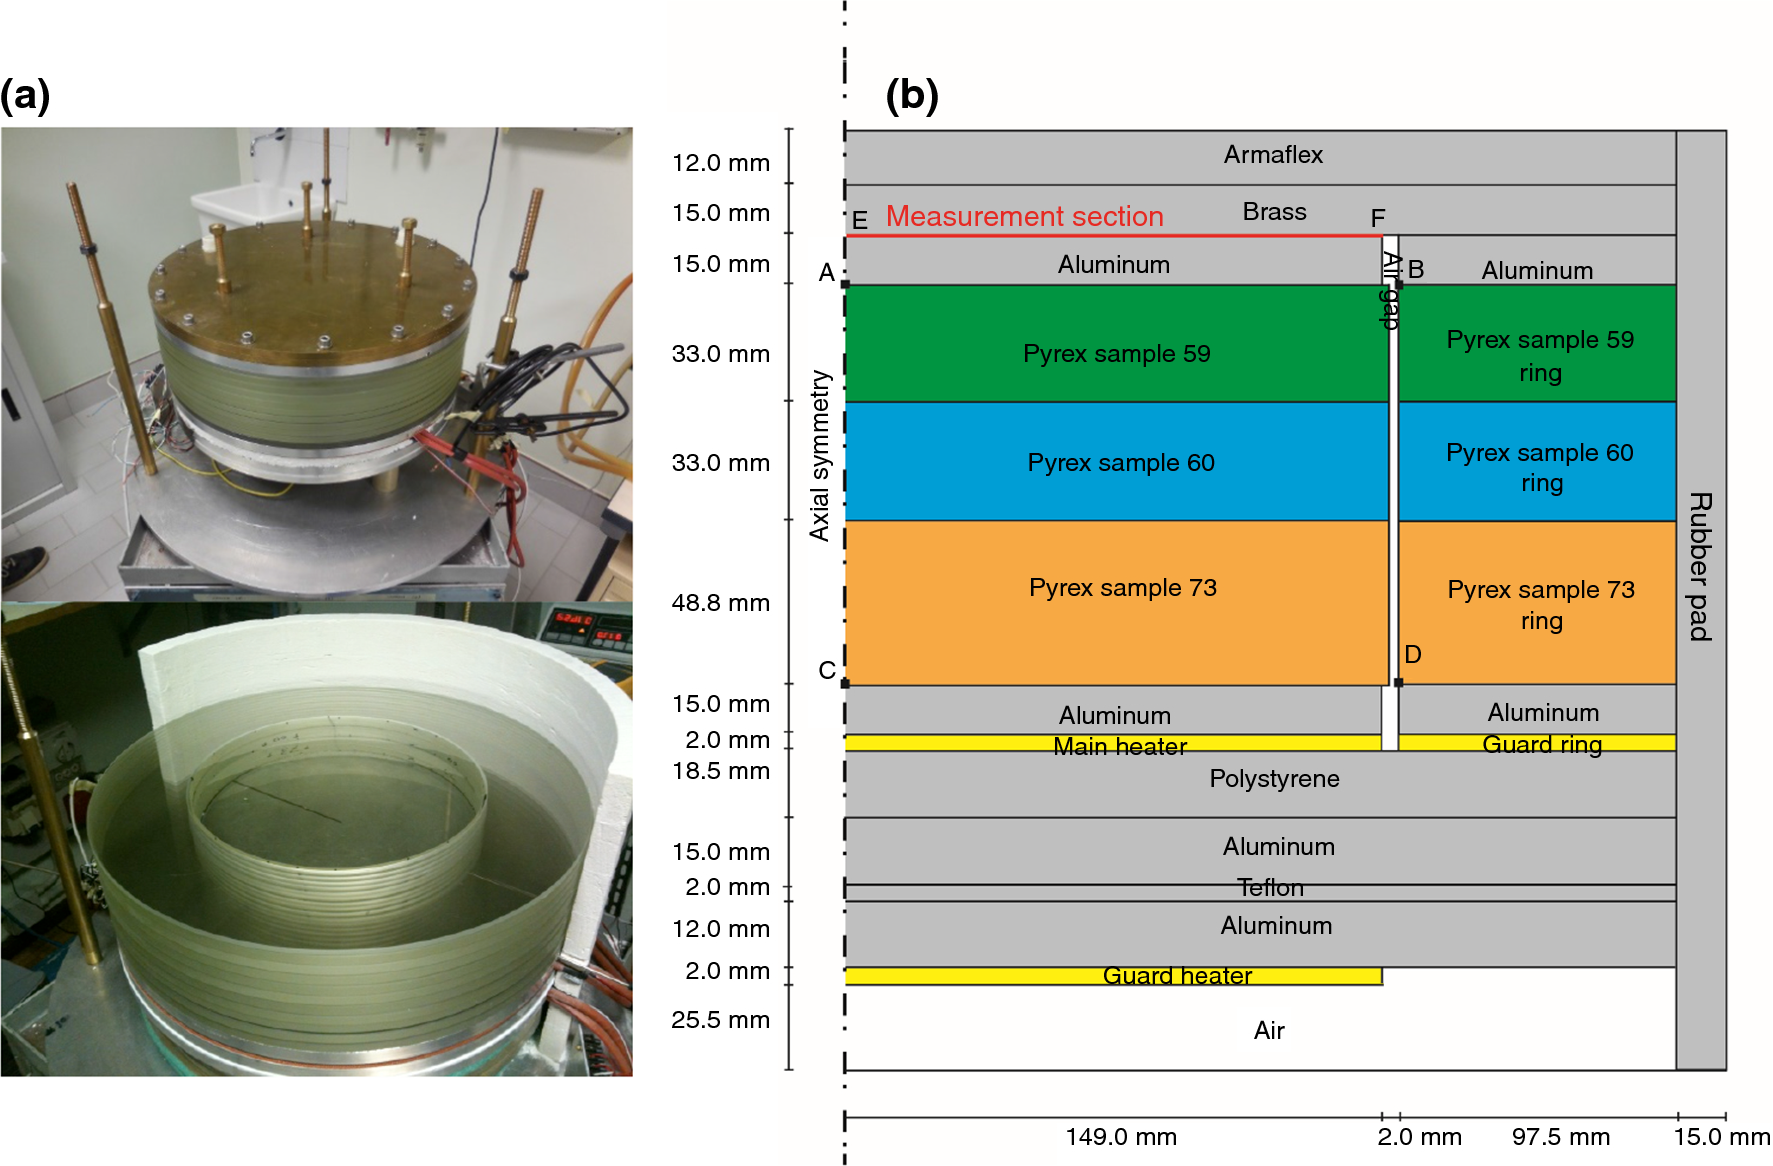 Experimental and numerical analysis in heat flow sensors